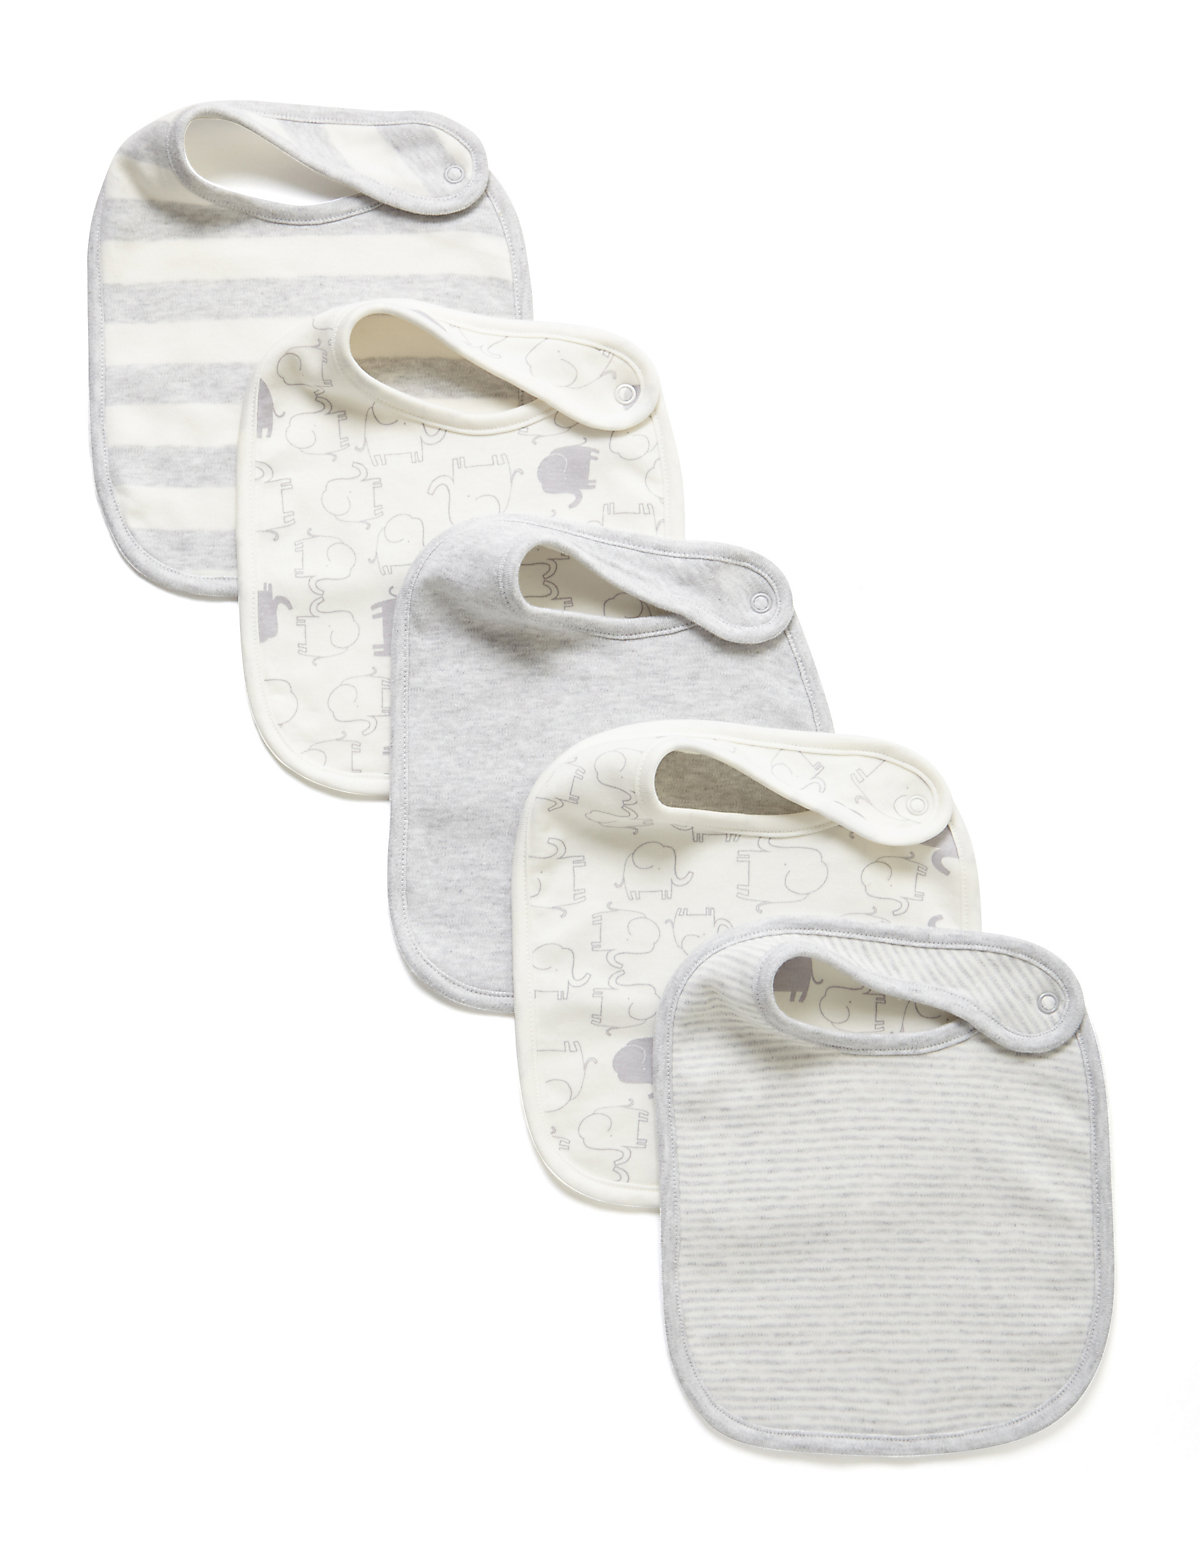 5 Pack Pure Cotton Assorted Bibs